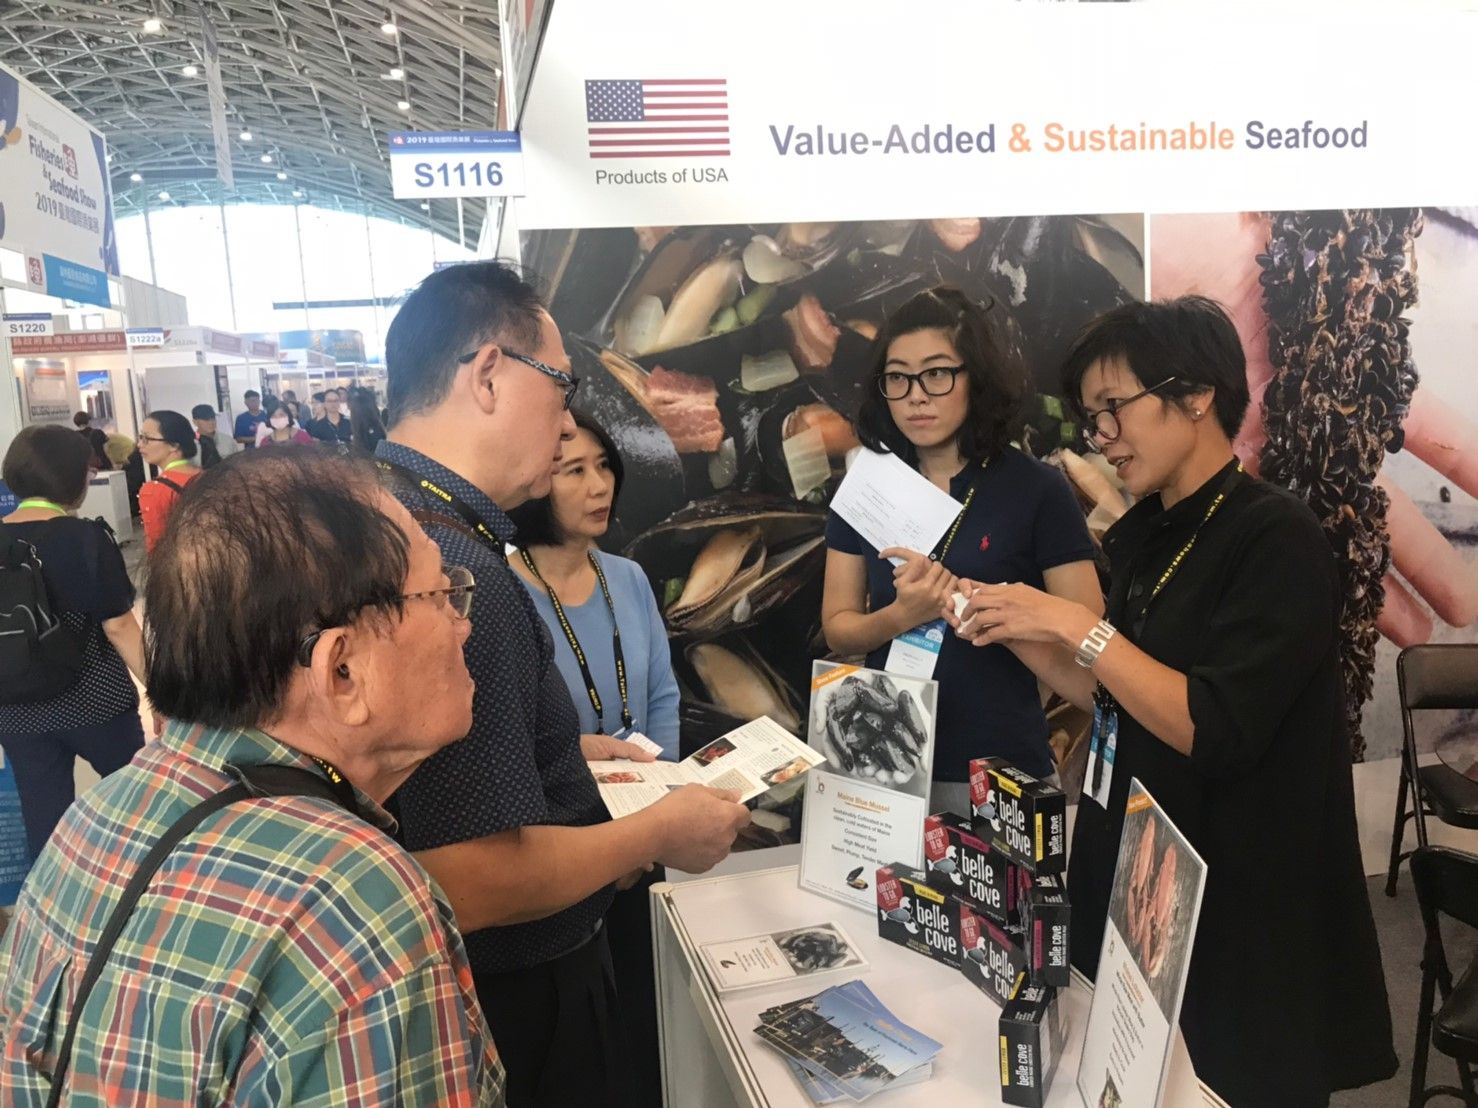 2019 Taiwan International Fishery & Seaf